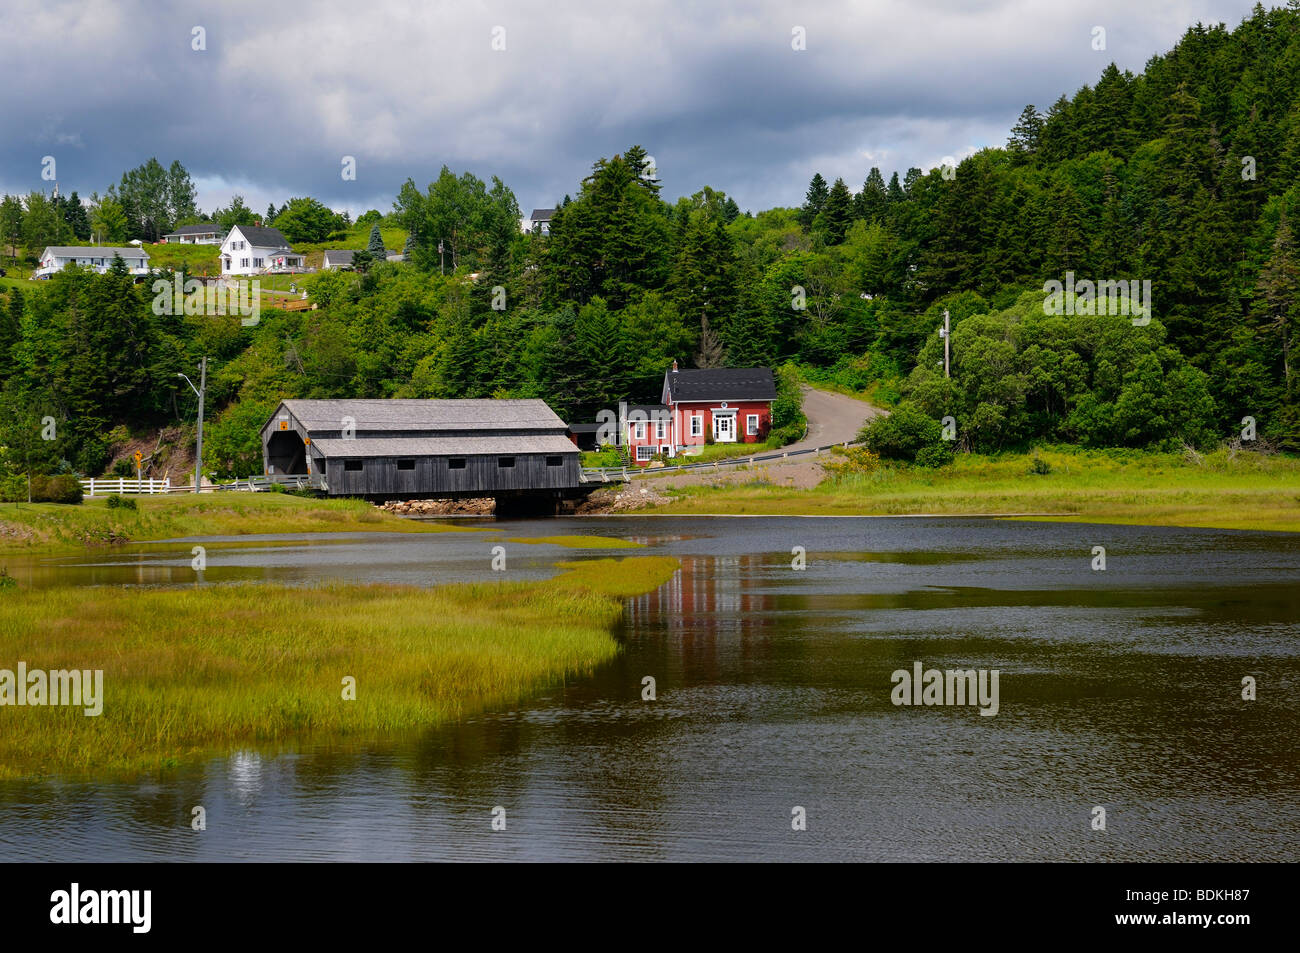 Covered bridge over the Irish River in St Martins, Bay of Fundy, New Brunswick, Canada - Stock Image